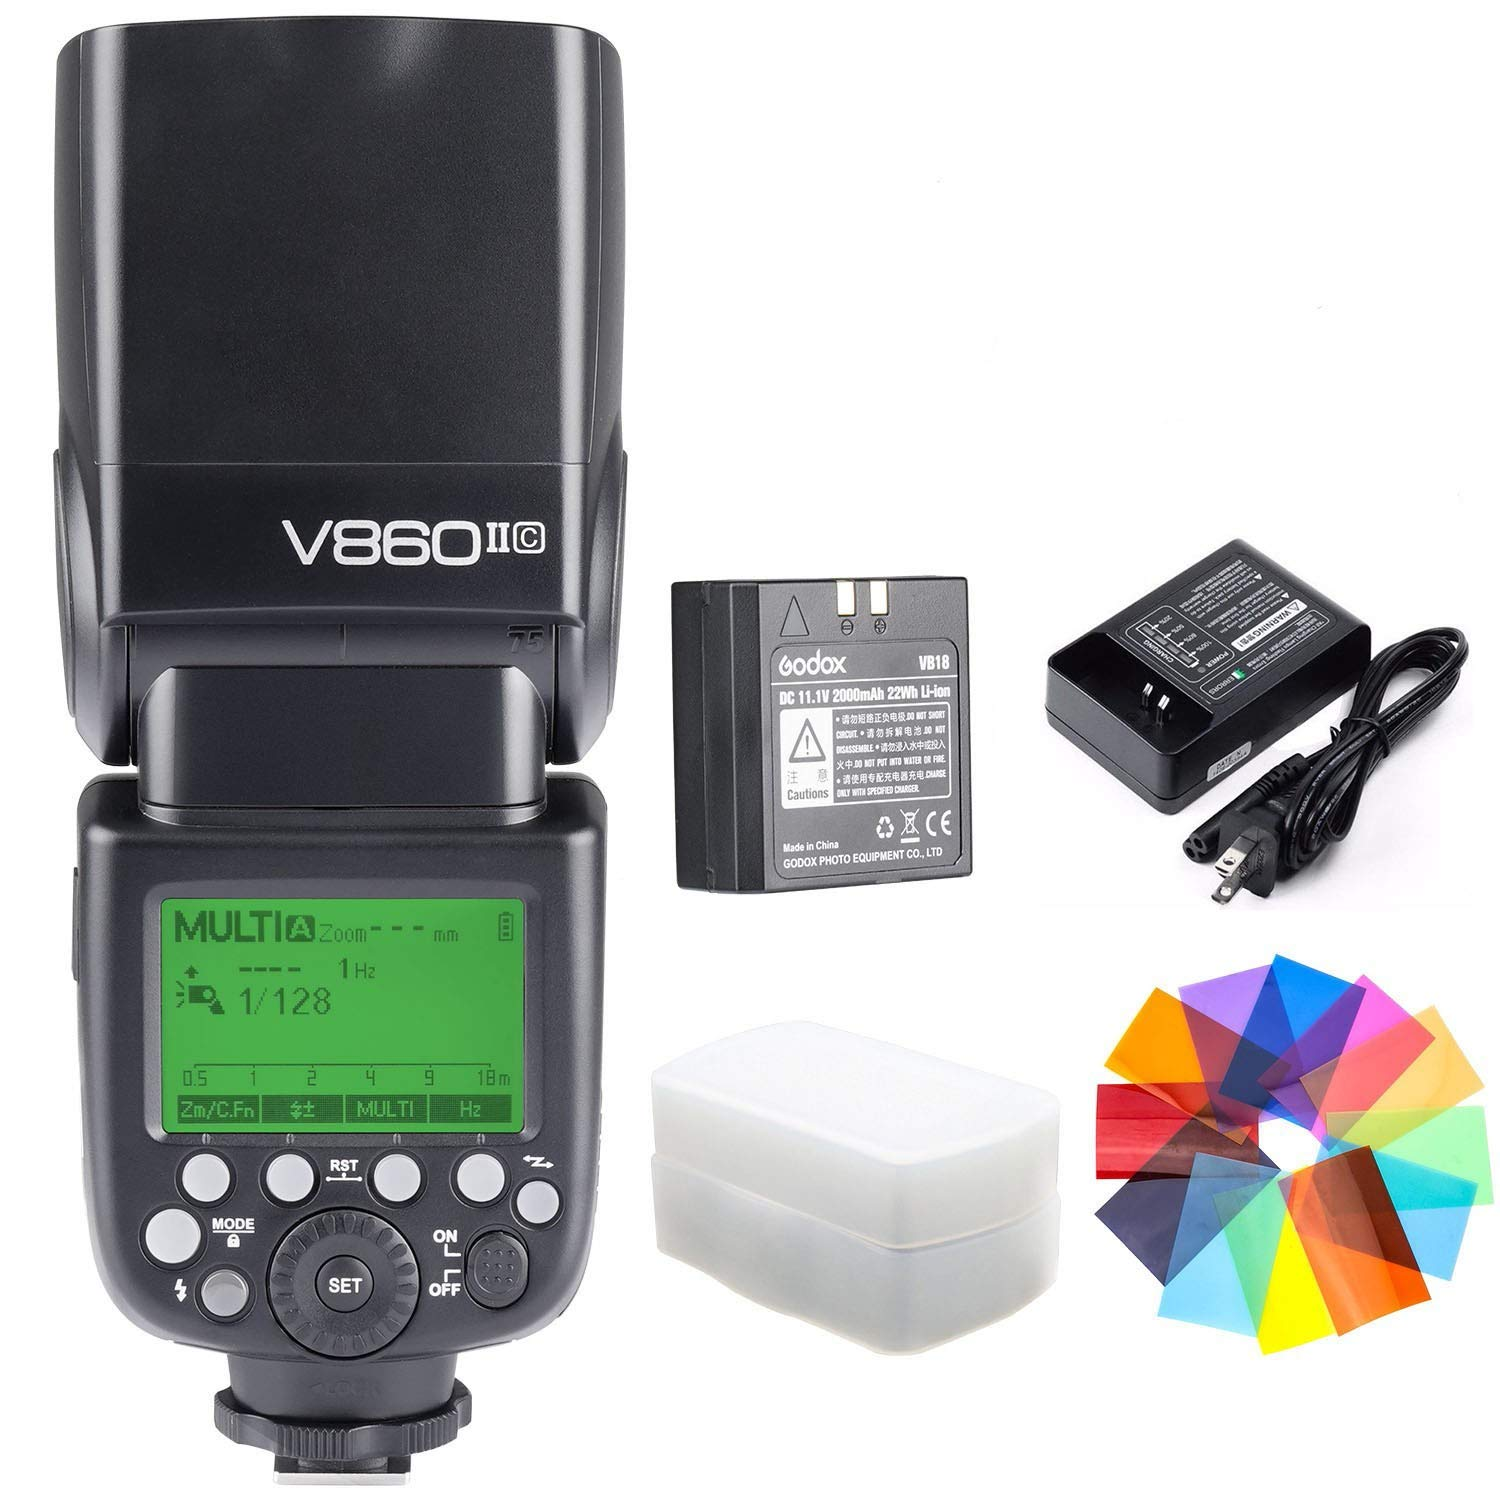 Godox V860II-C Kit E-TTL High Speed Sync 1/8000s 2.4G GN60 Li-ion Battery 1.5s Recycle Time Camera Flash Speedlite Light for Canon EOS Cameras with Color Filters (V860II-C)